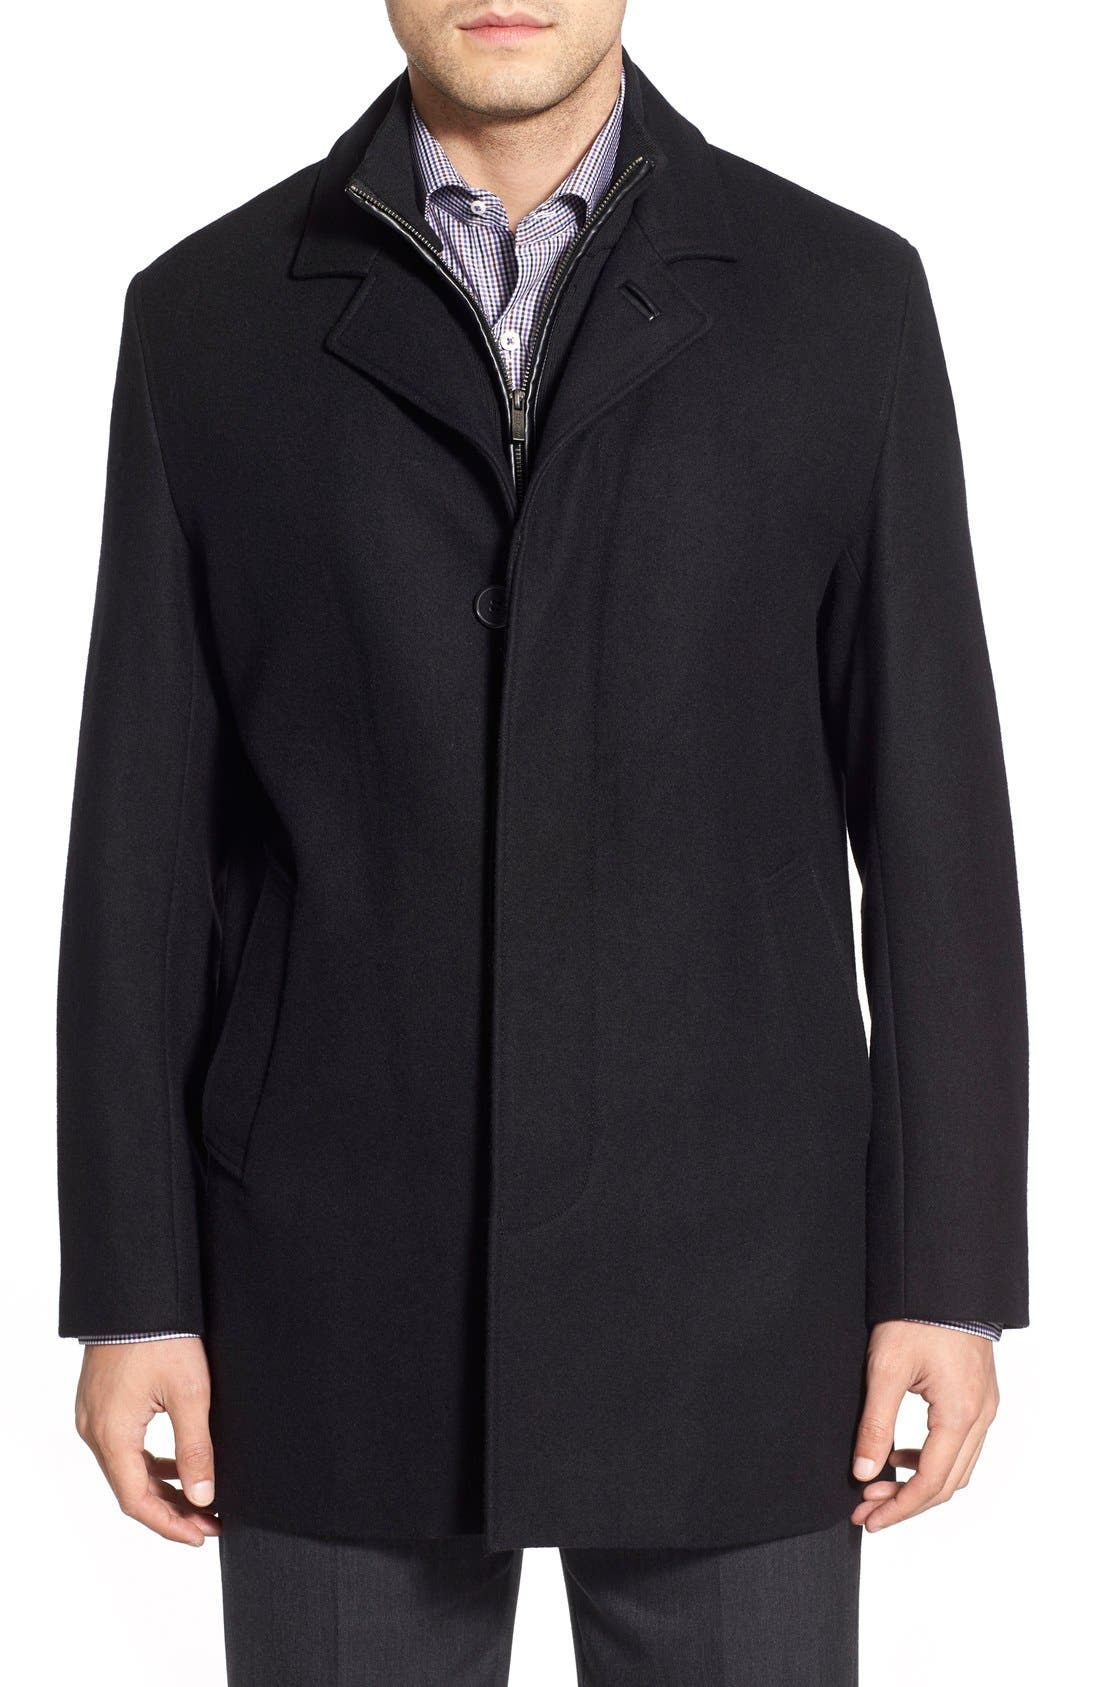 Cole Haan Wool Blend Top Coat with Inset Knit Bib